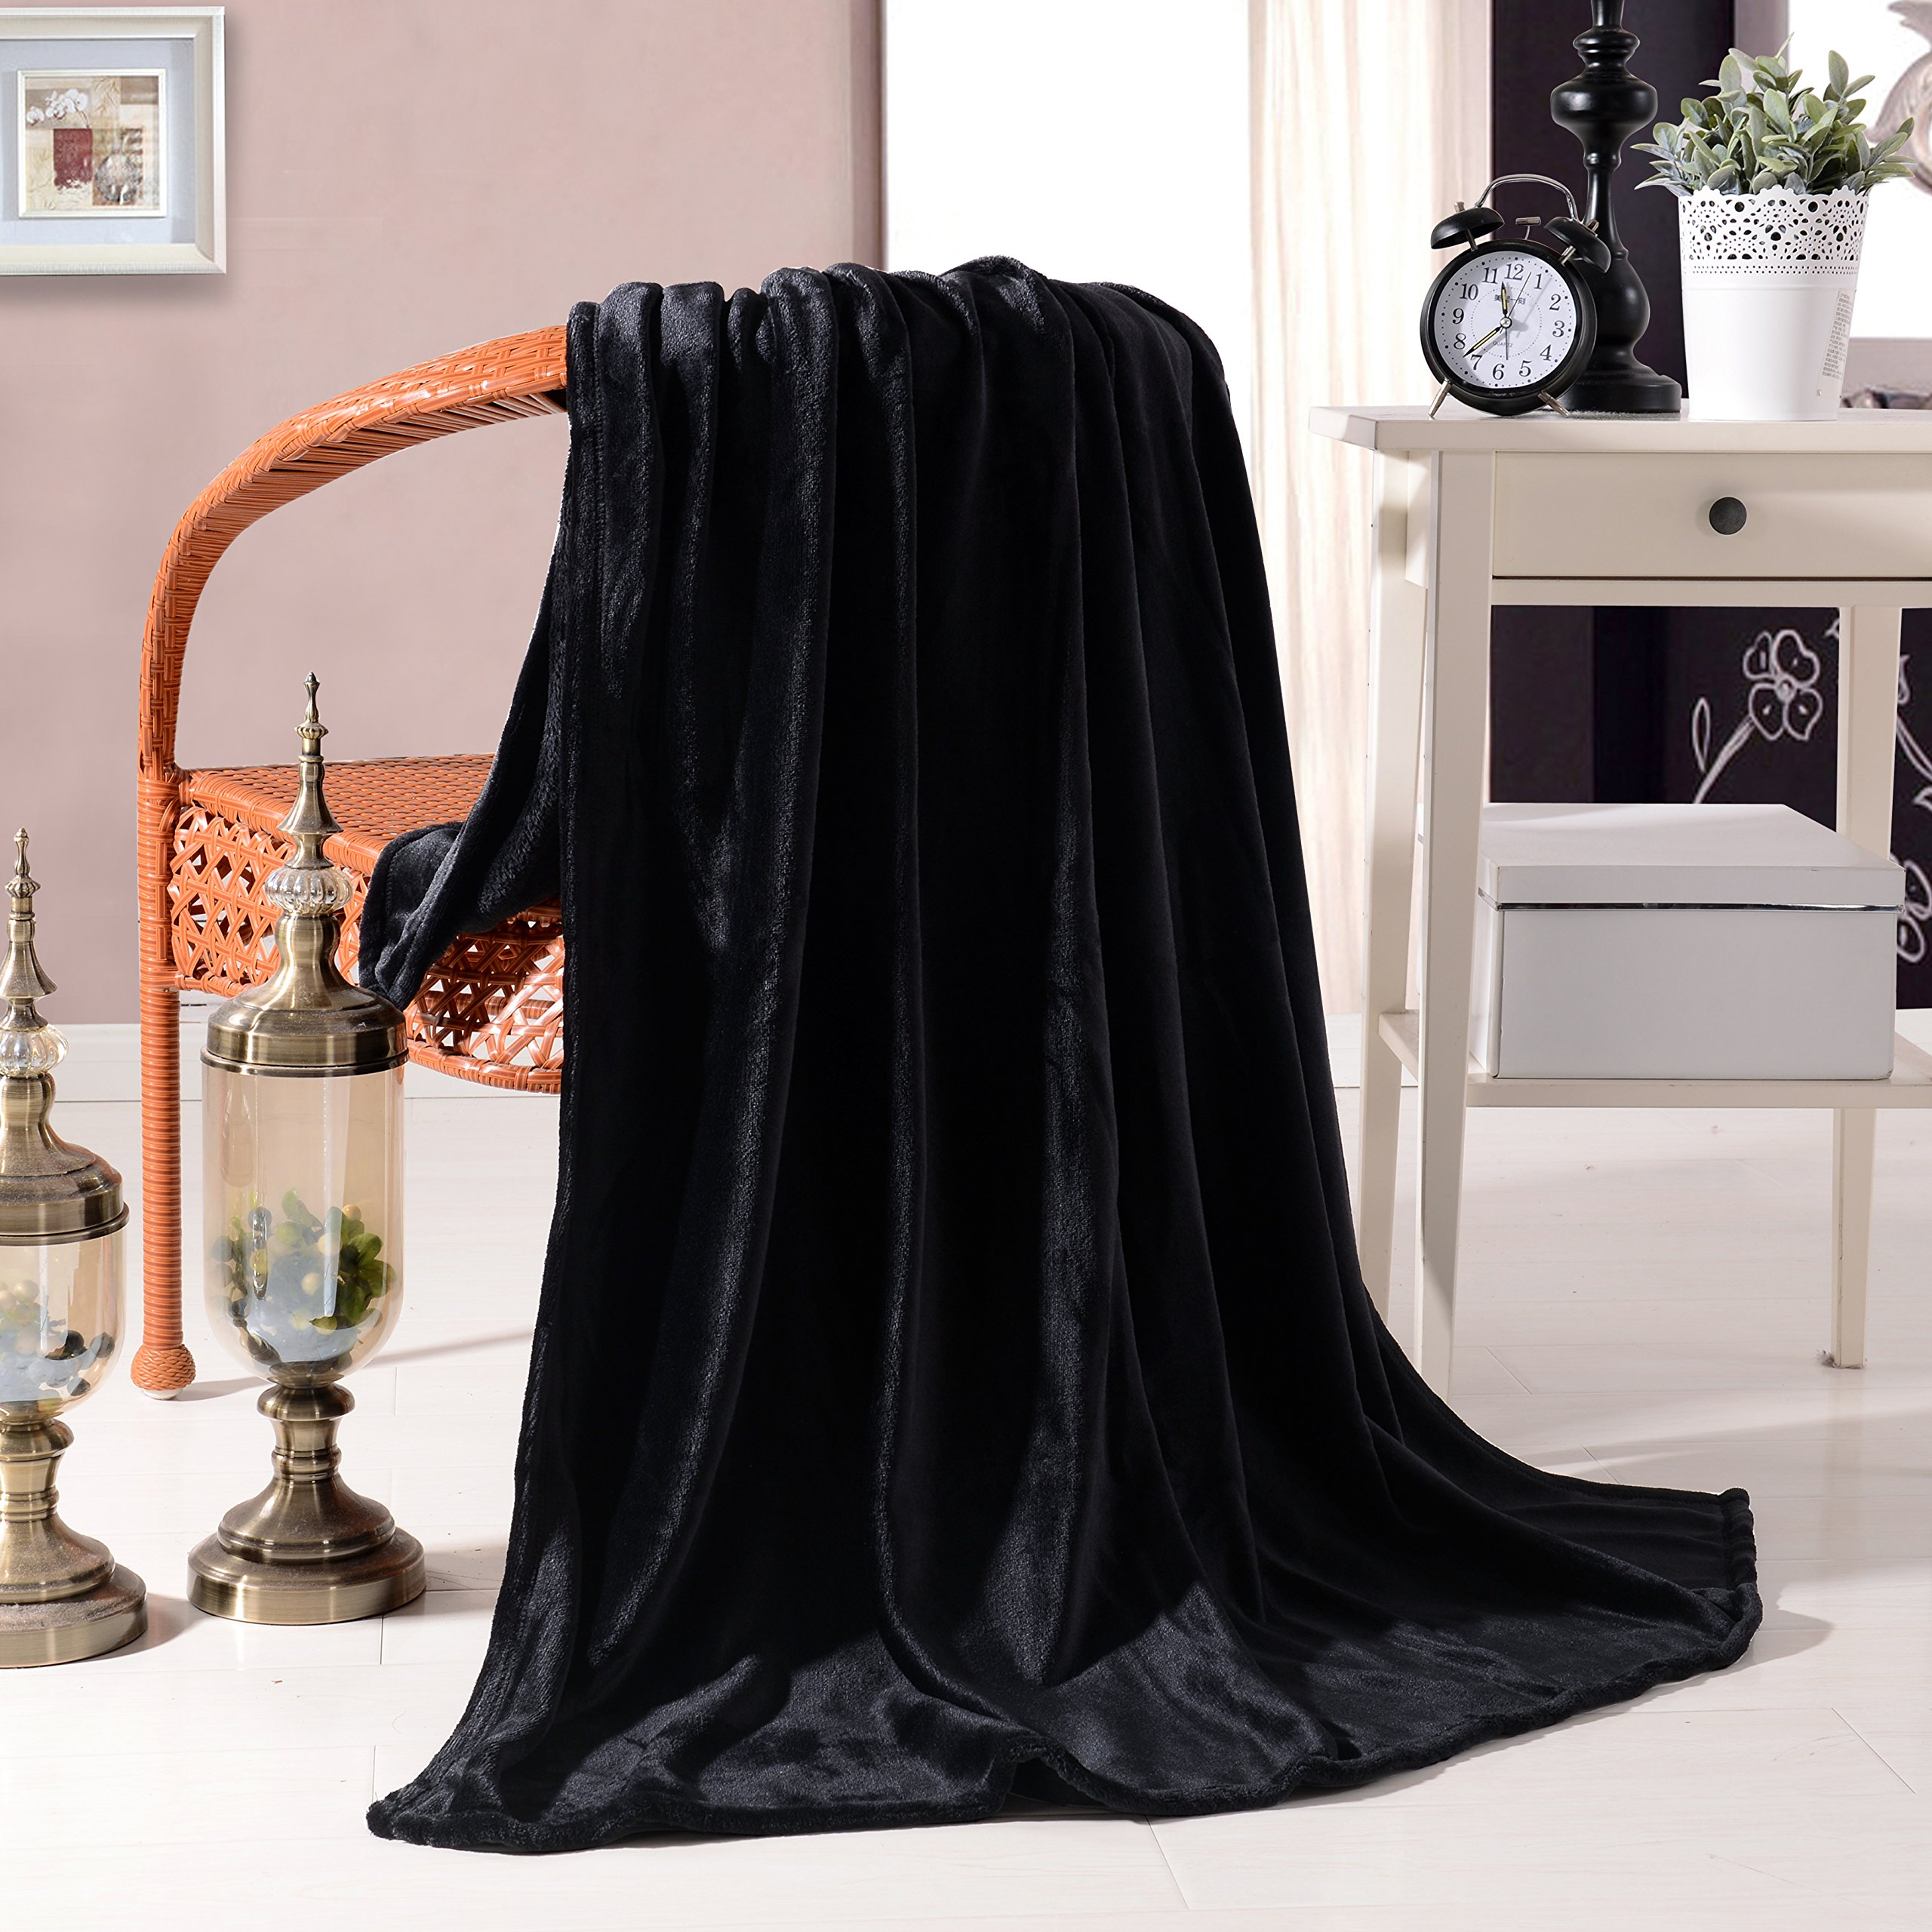 Exclusivo Mezcla Luxury Flannel Velvet Plush Throw Blanket – 50'' x 60'' (Black) by Exclusivo Mezcla